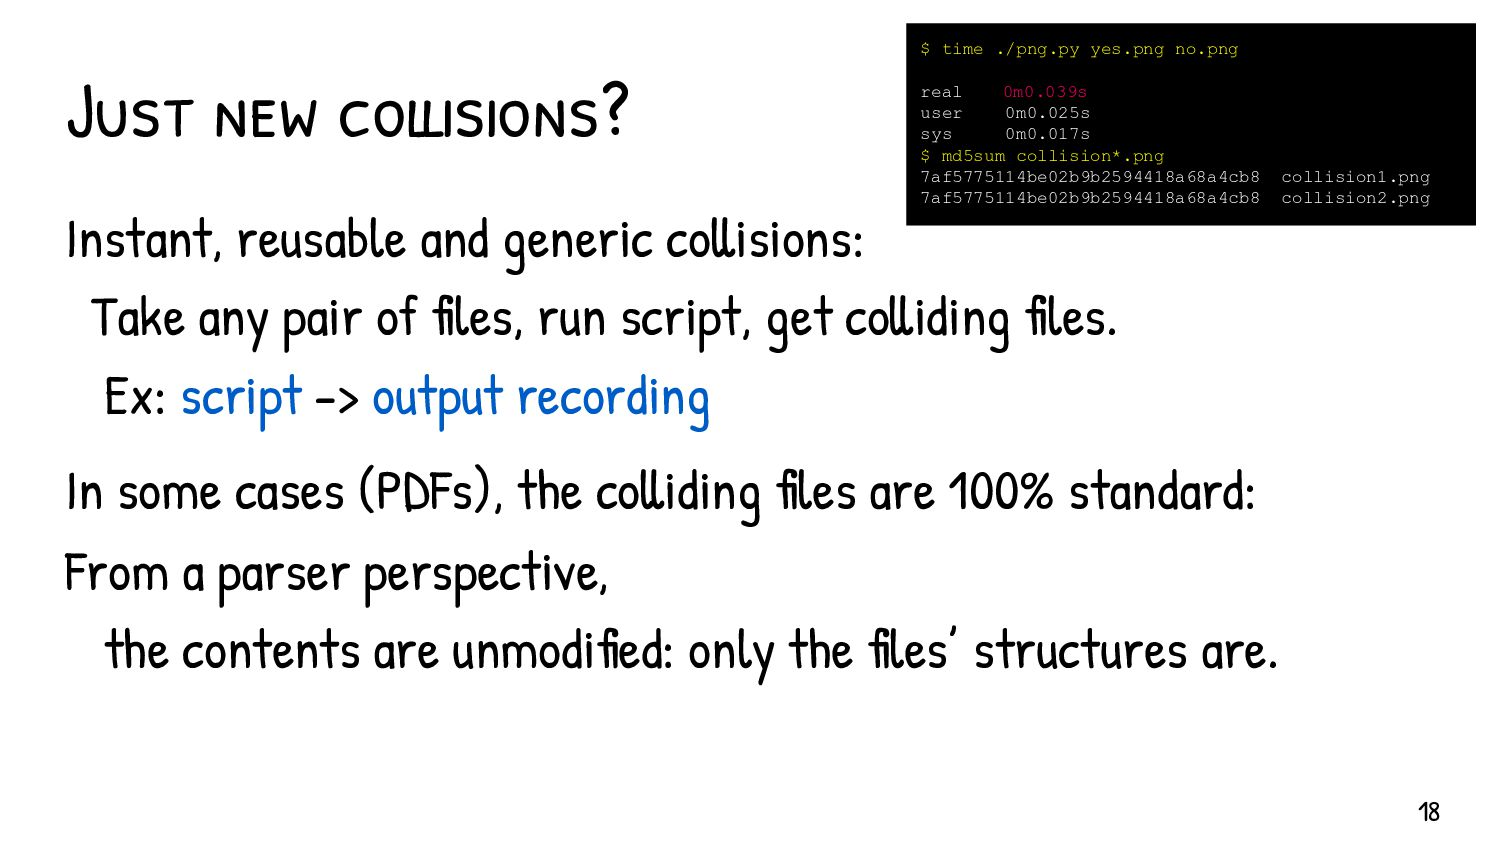 Demystifying long-lasting myths Hash collisions...